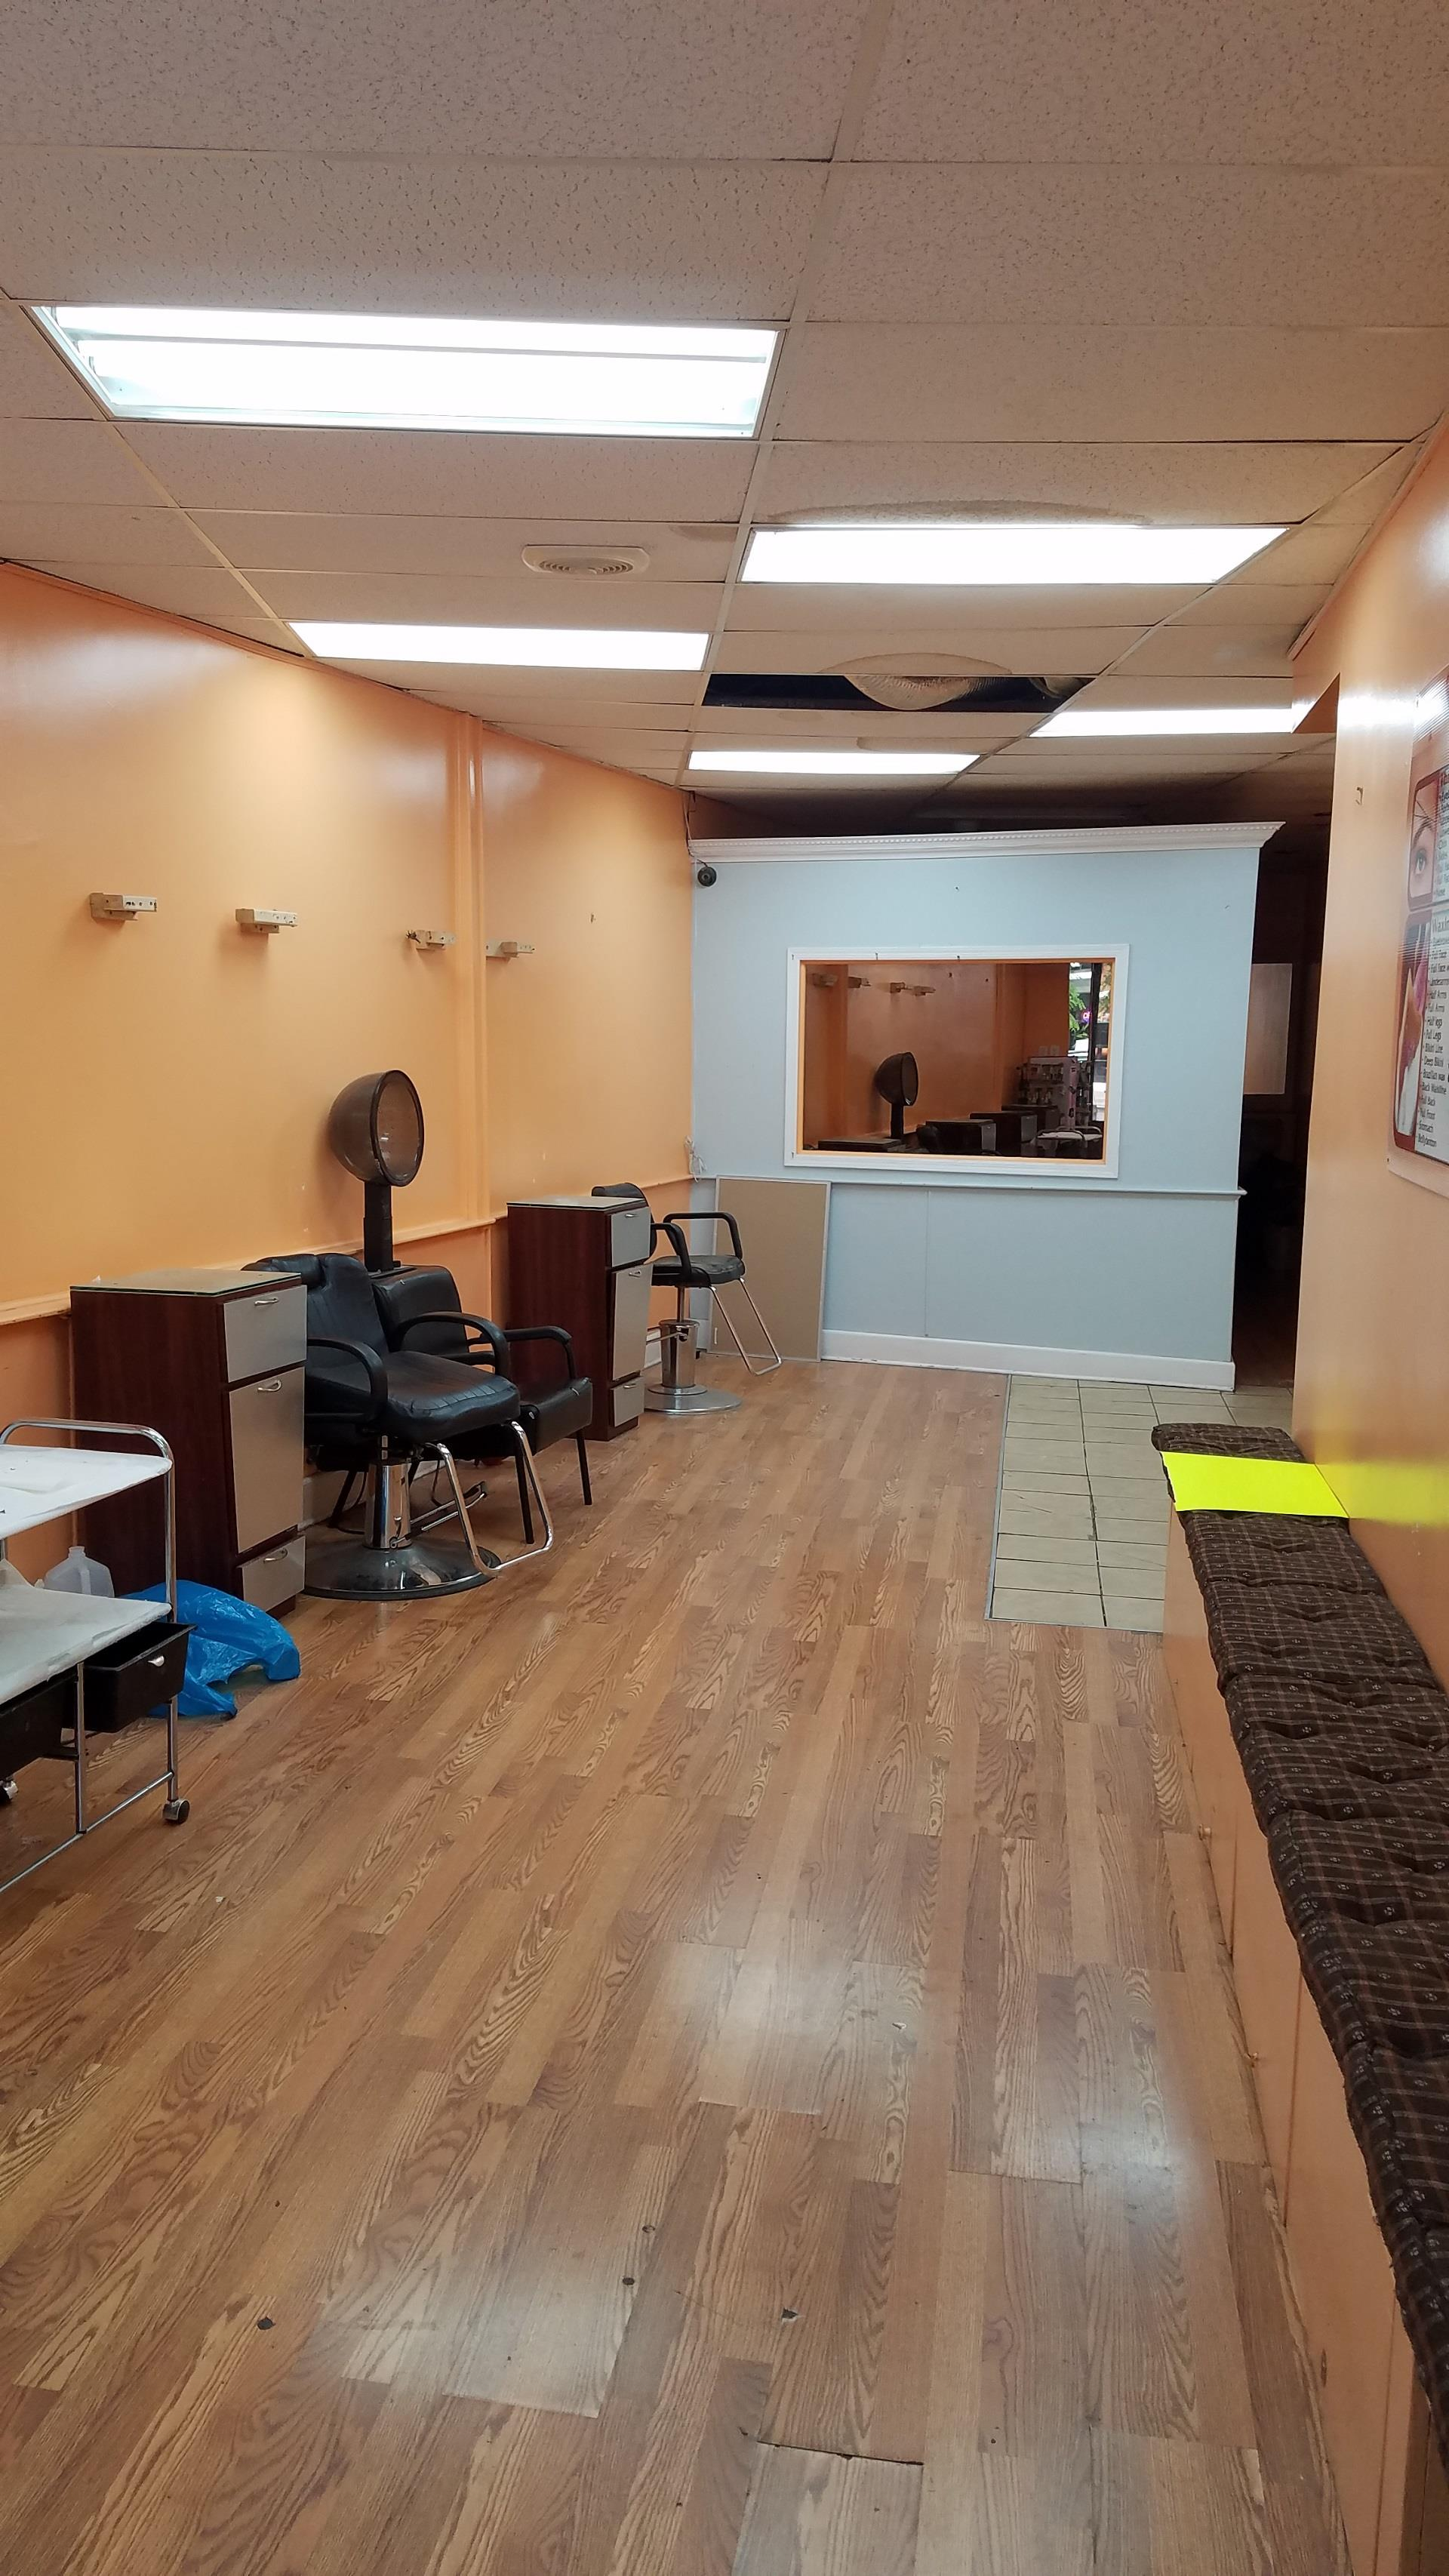 Additional photo for property listing at 8124 5th Ave  Brooklyn, New York 11209 United States